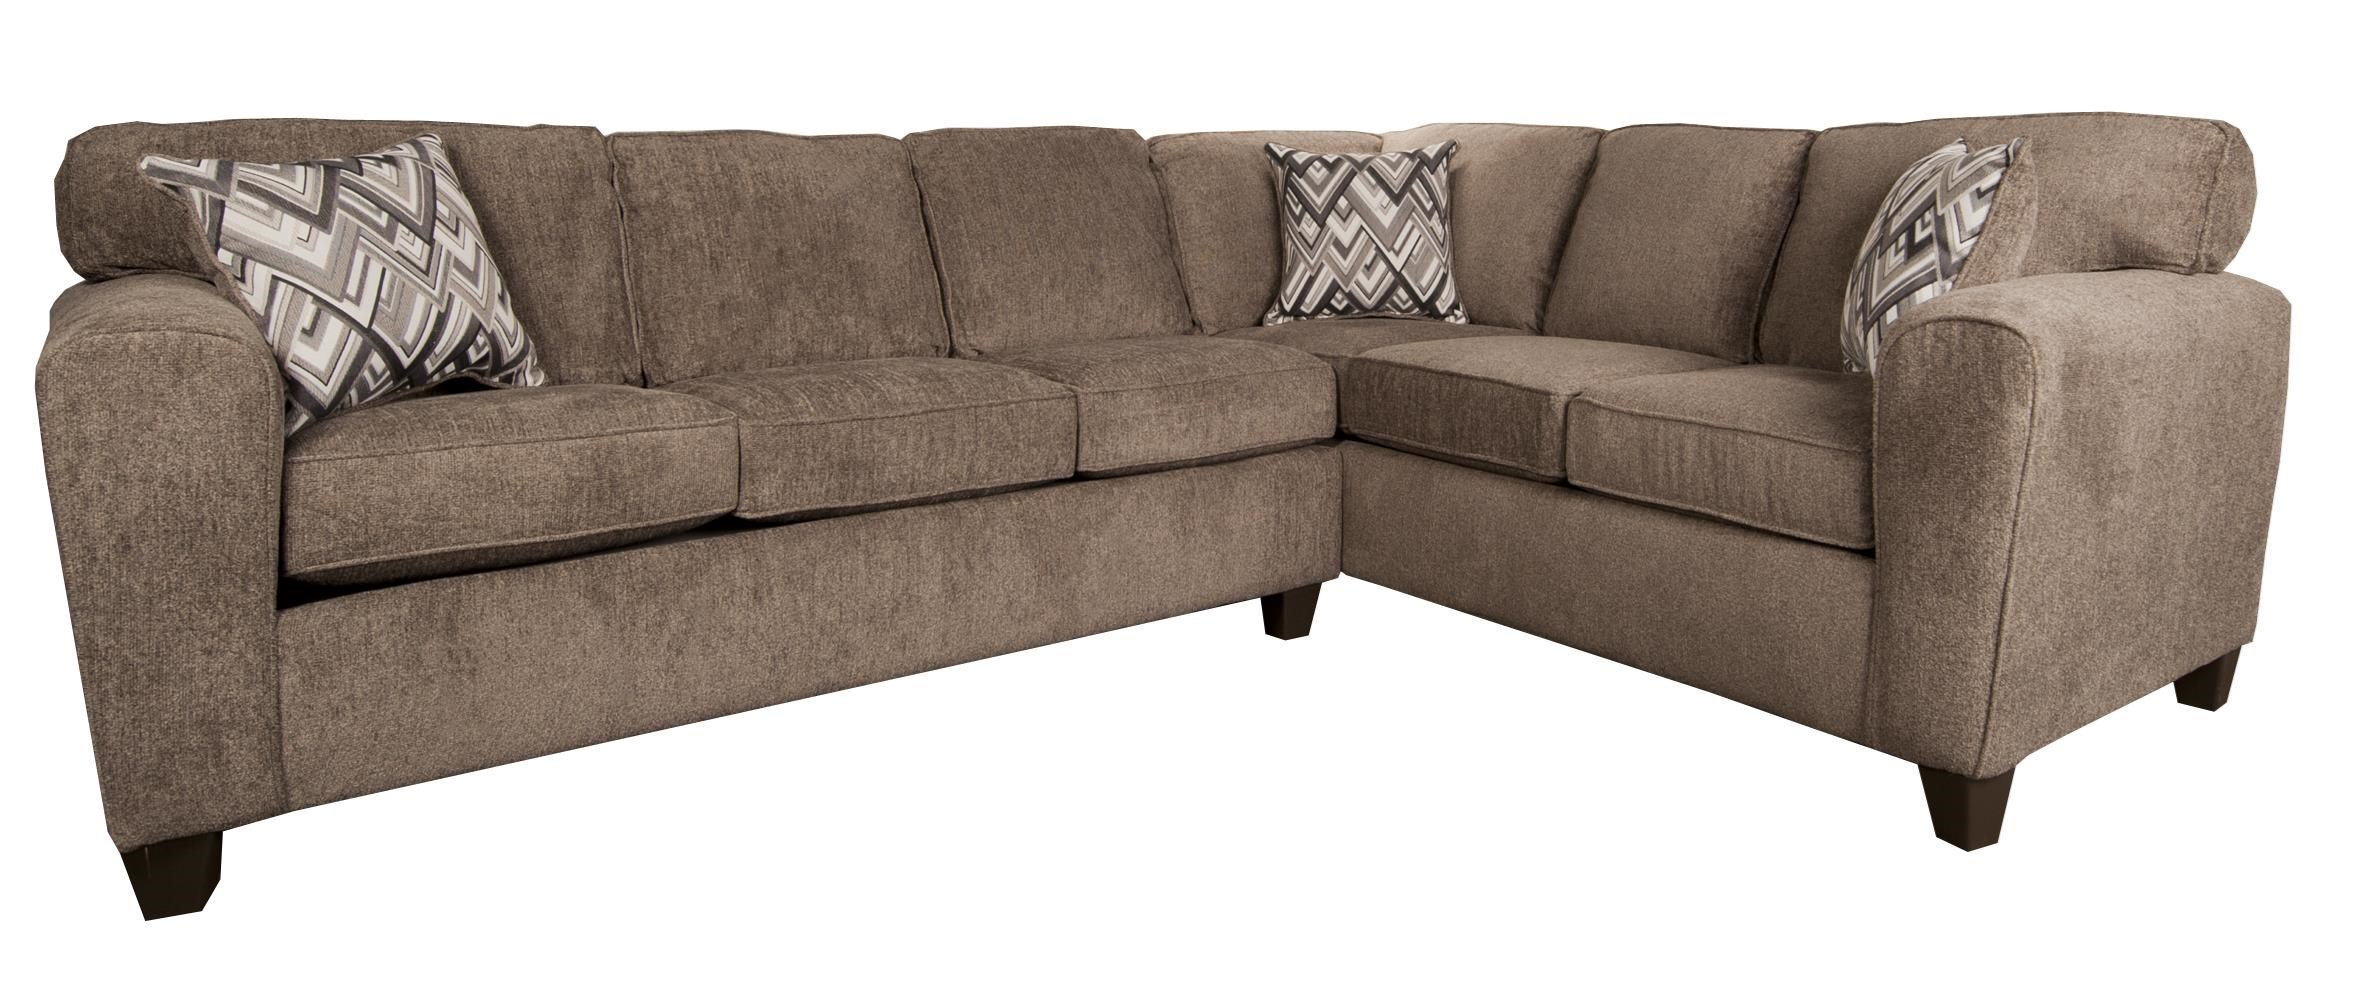 Morris Home Furnishings Wilson Wilson 2-Piece Sectional - Item Number: 134112283